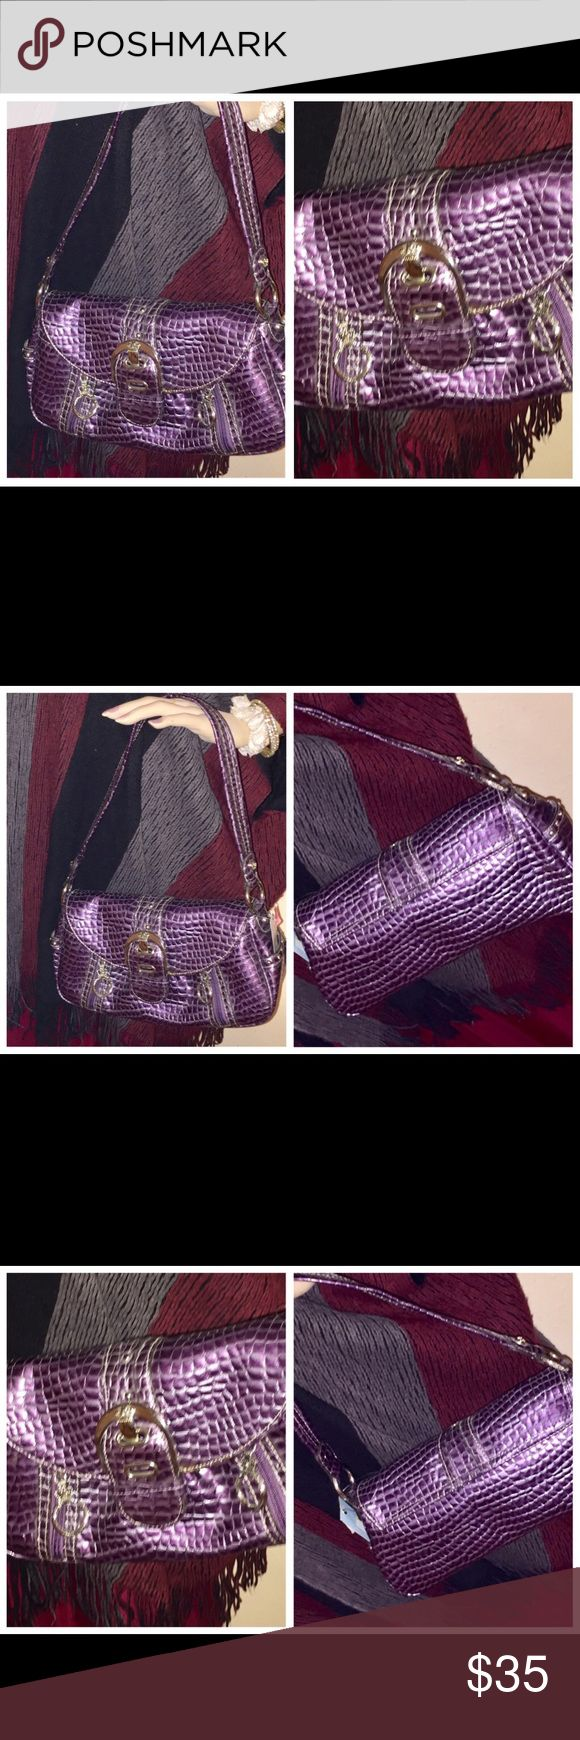 NWT KATHY VAN ZEELAND PURPLE REPTILE PRINT PURSE NWT KATHY VAN ZEELAND PURPLE REPTILE PRINT PURSE BAG. MEASURES 12 inches across and is 7 inches in length. With the strap it is 15 inches long. Kathy Van Zeeland Bags Shoulder Bags